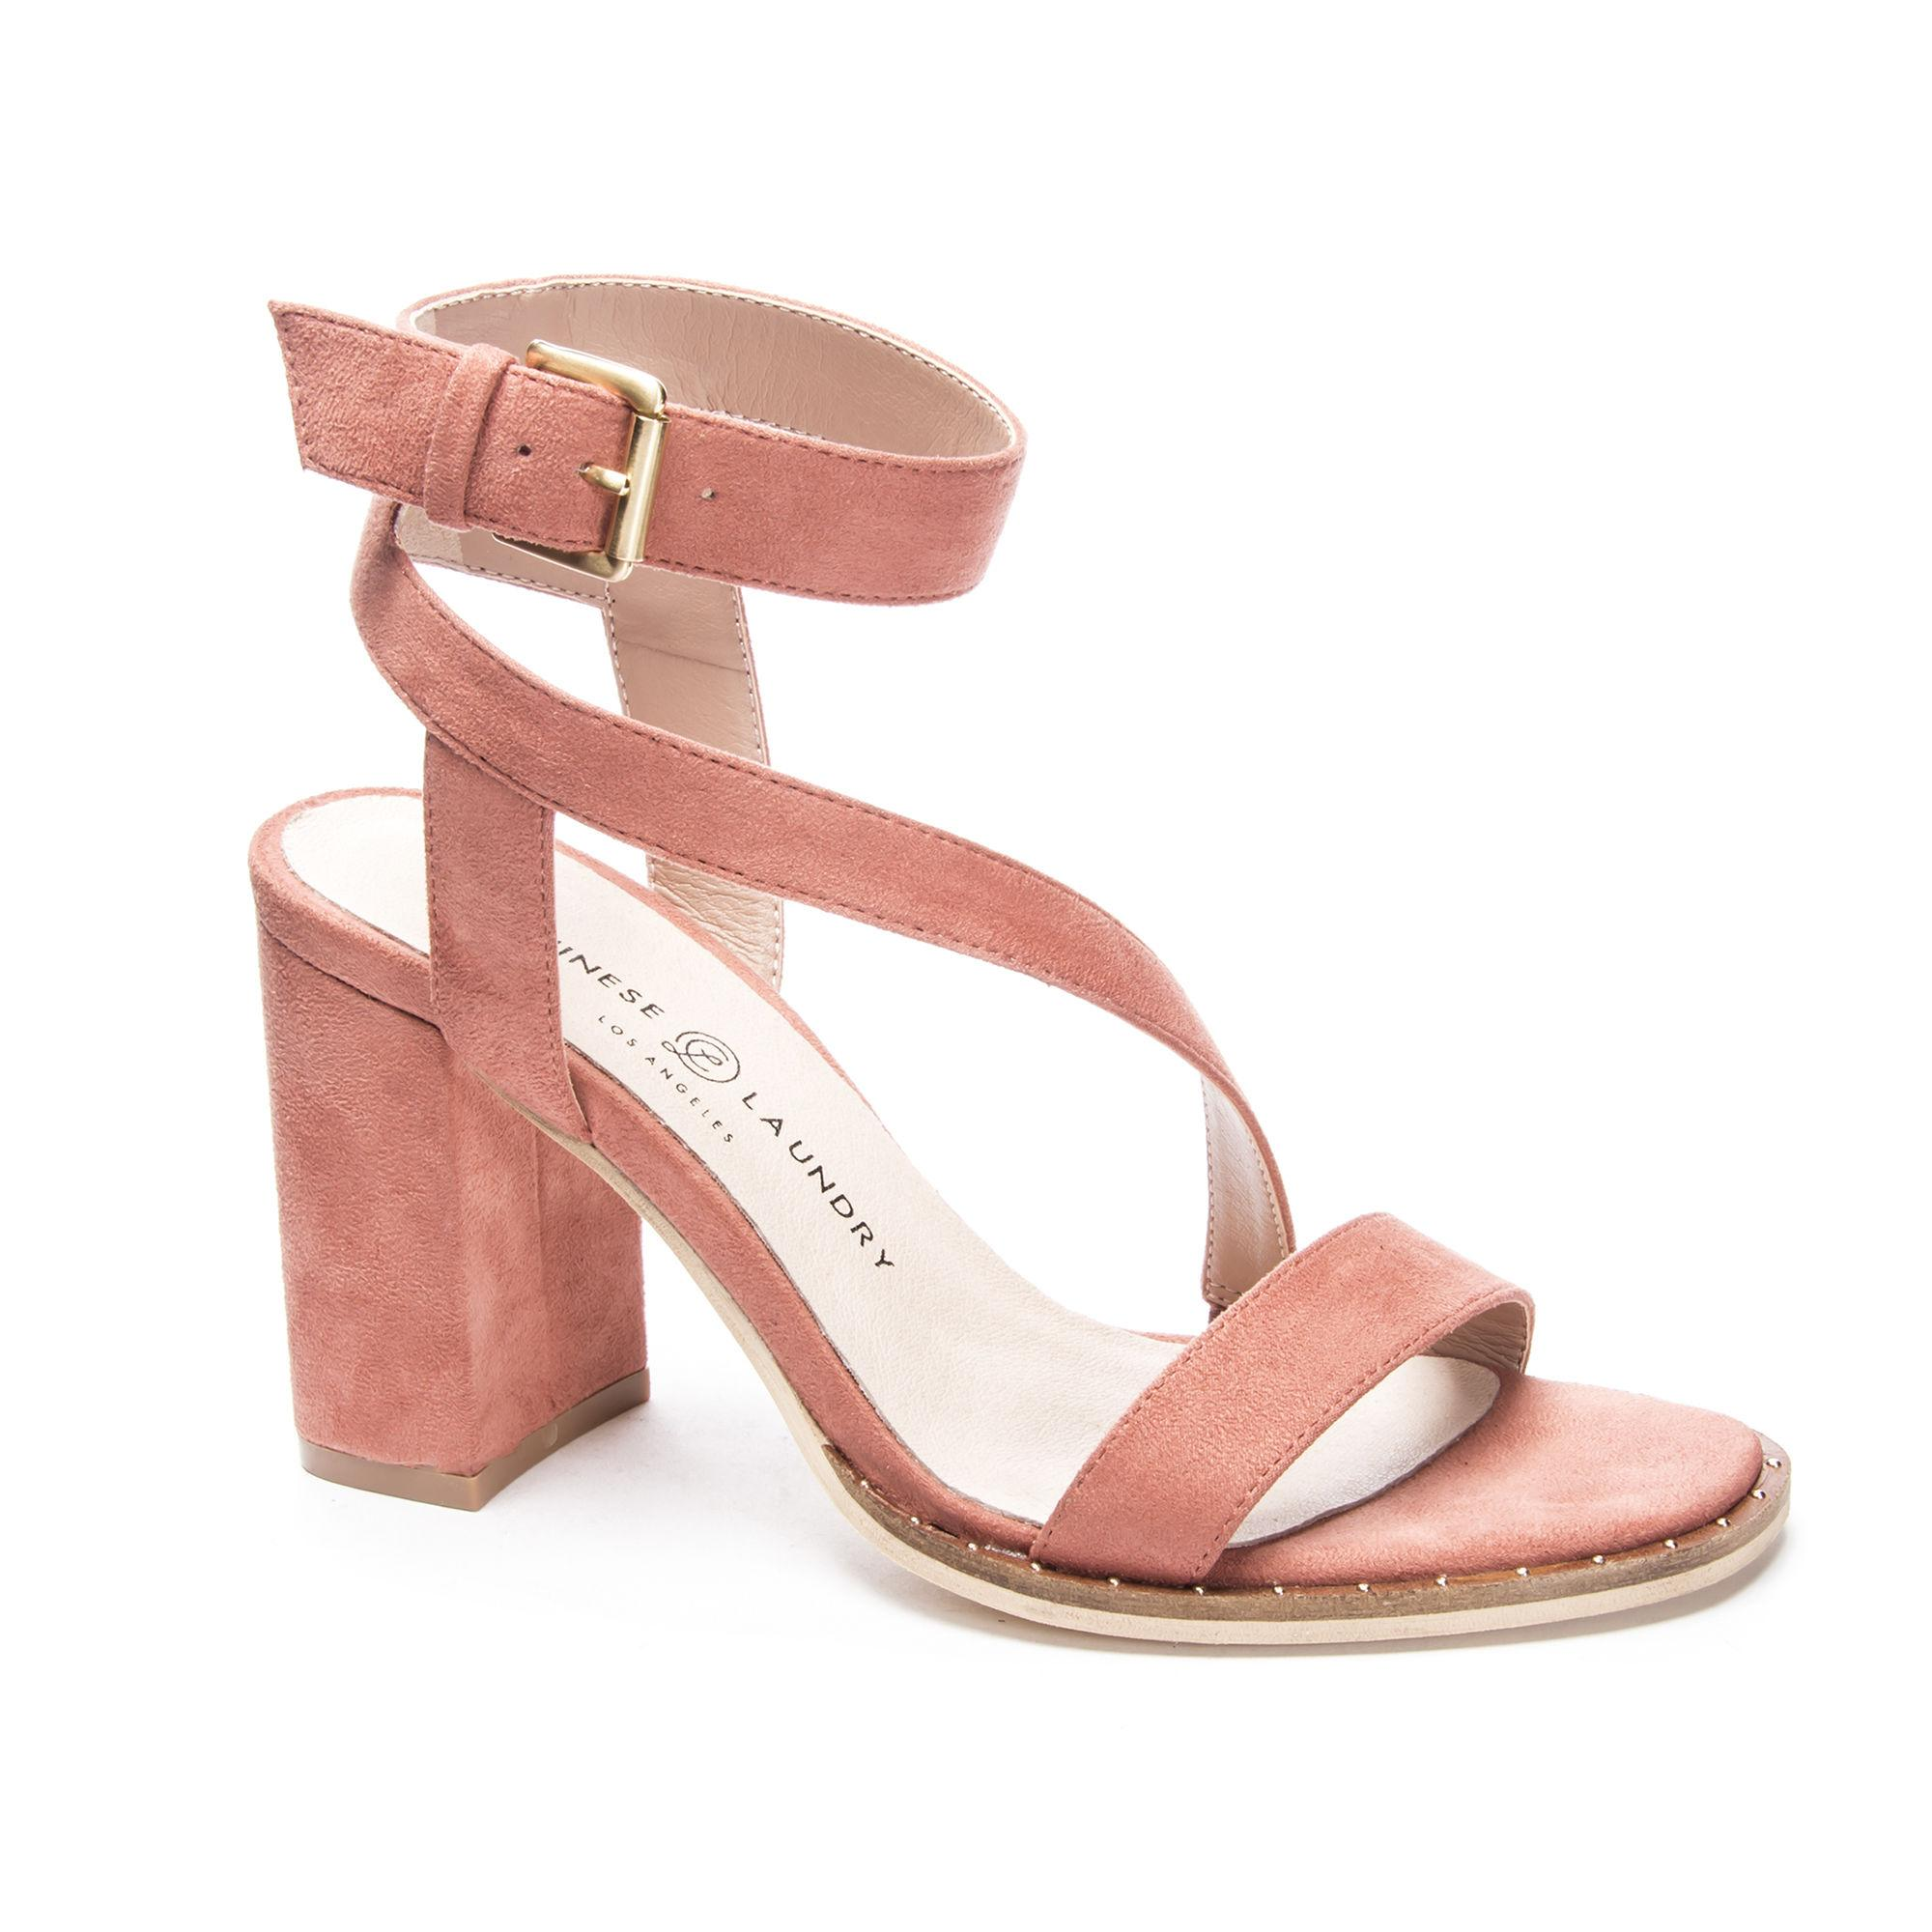 d4f160cdf6d9 Lyst - Chinese Laundry Simi Block Heel Sandal in Pink